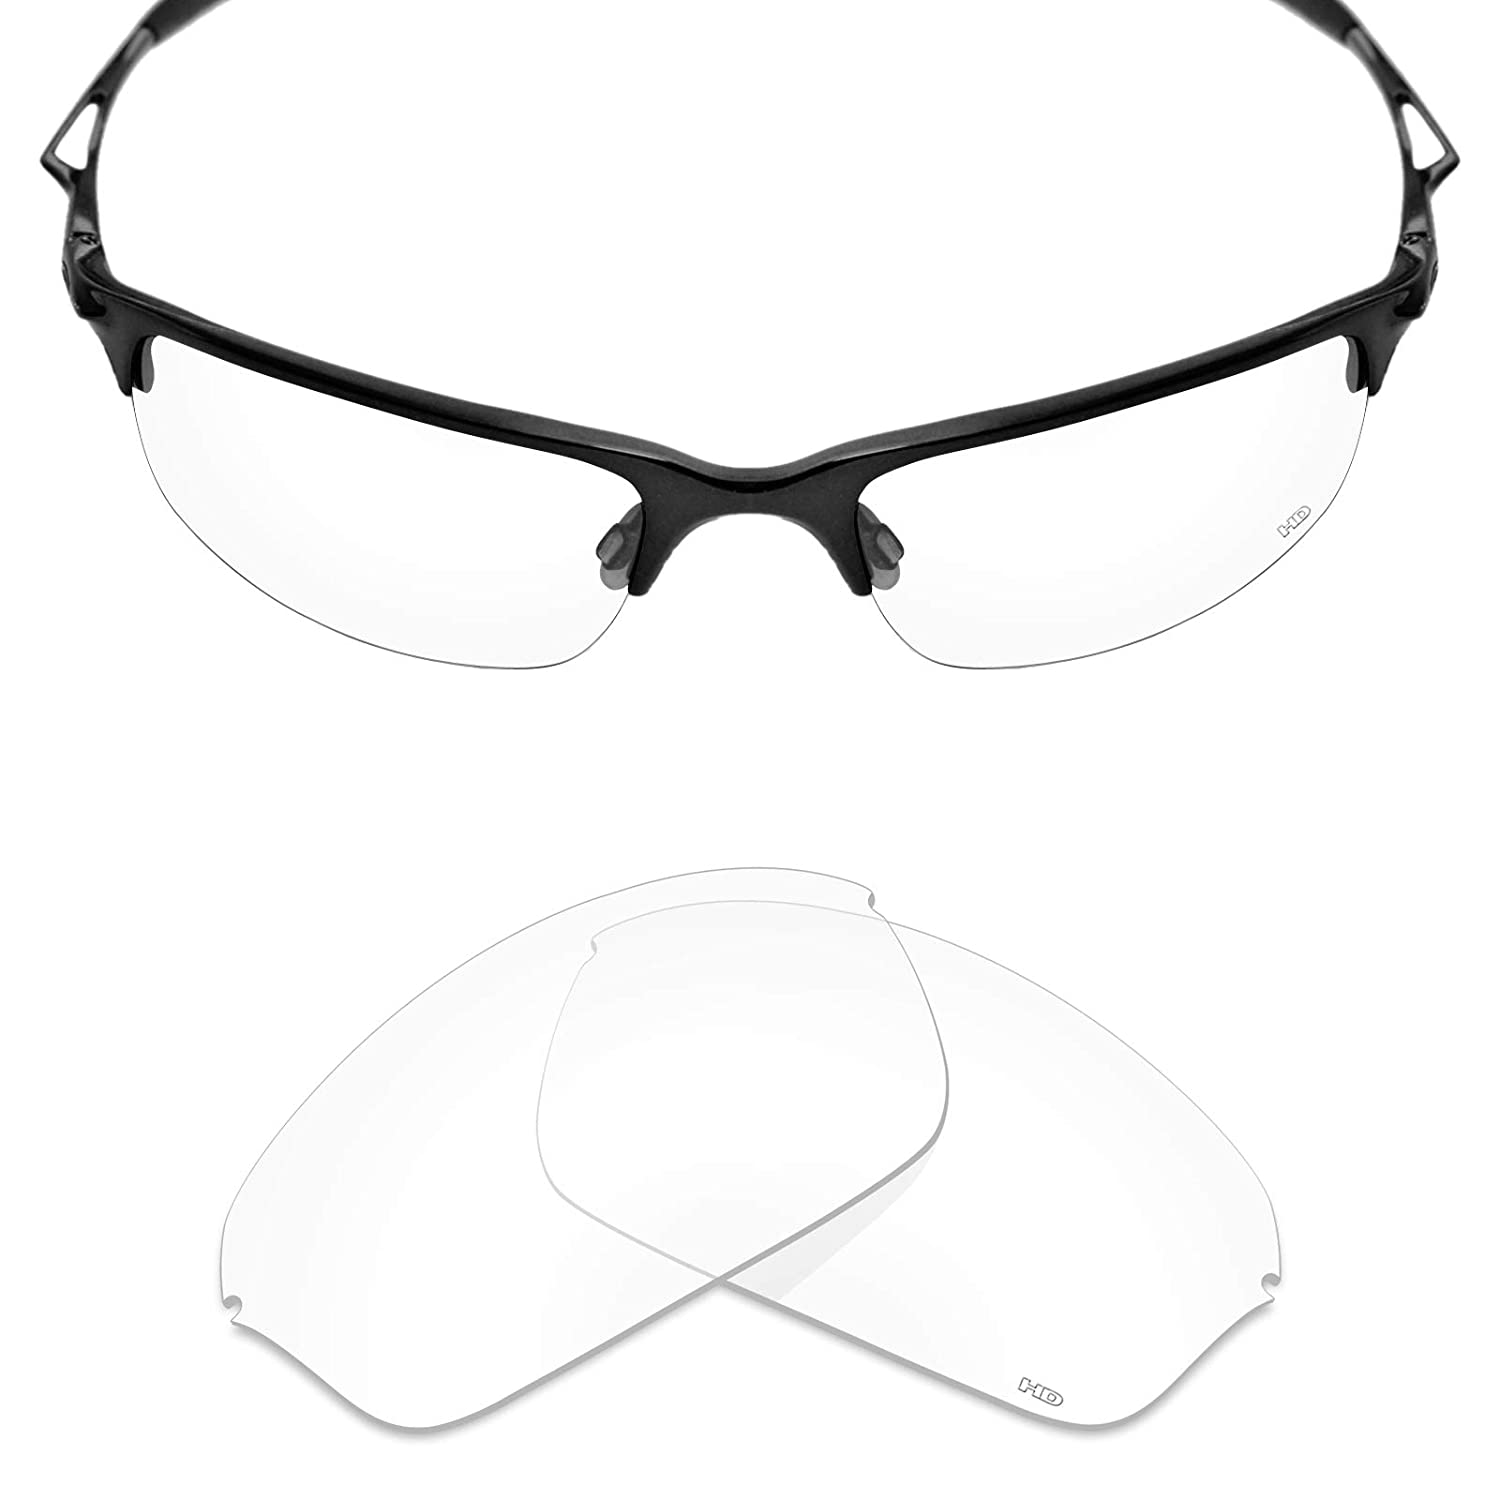 35d4f9470e Amazon.com  Mryok+ Polarized Replacement Lenses for Oakley Half Wire 2.0 -  HD Clear  Clothing